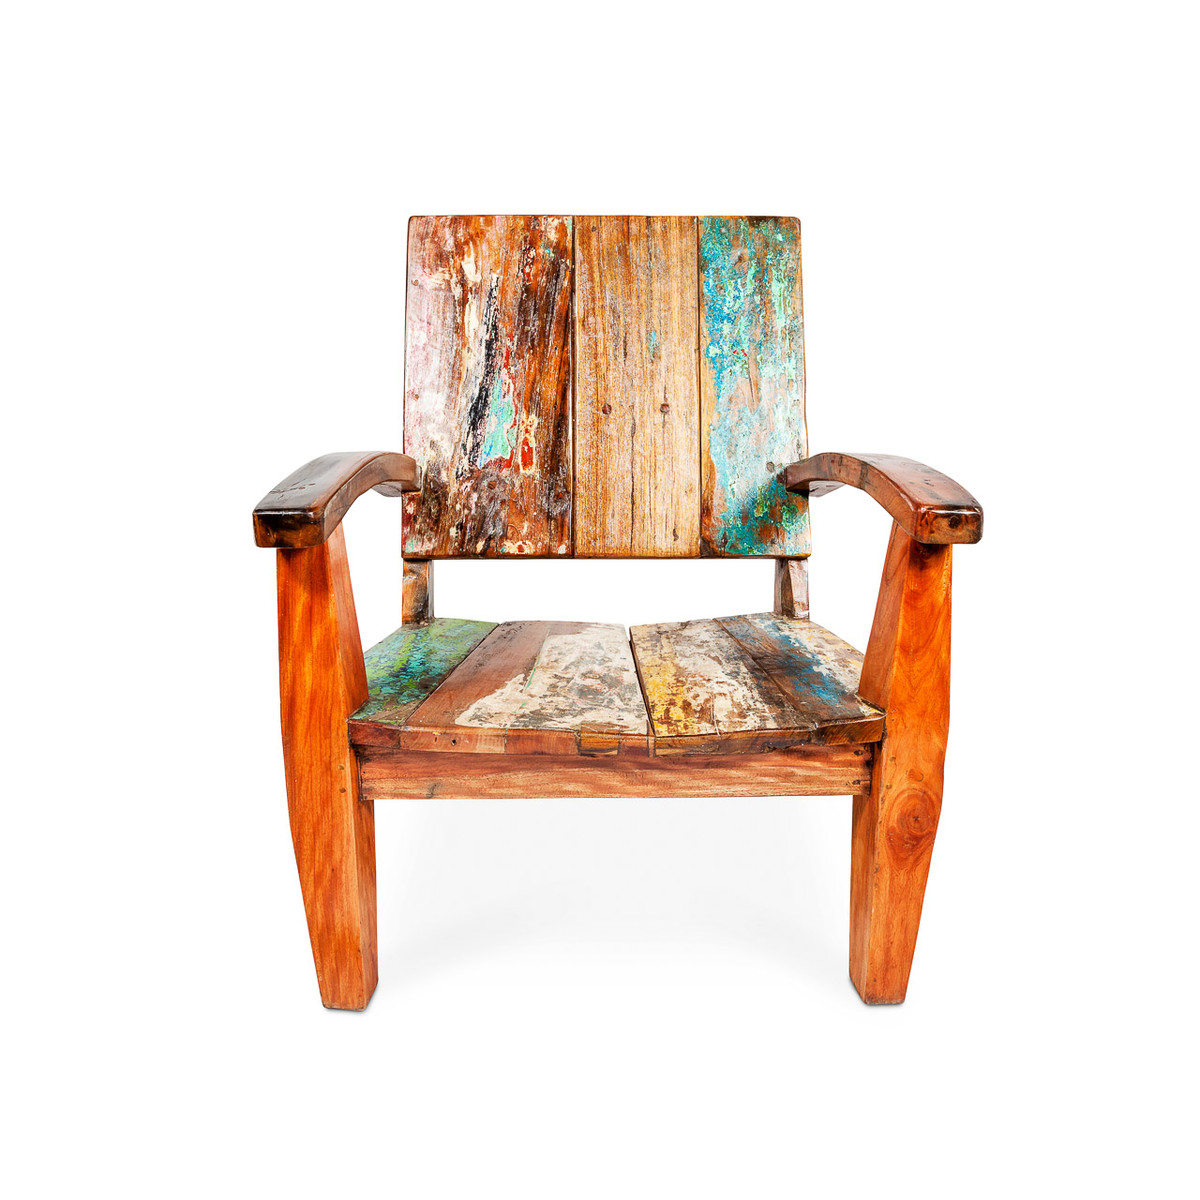 Remarkable Recycled Timber Outdoor Deck Chairs Boat Timber Furniture Gamerscity Chair Design For Home Gamerscityorg